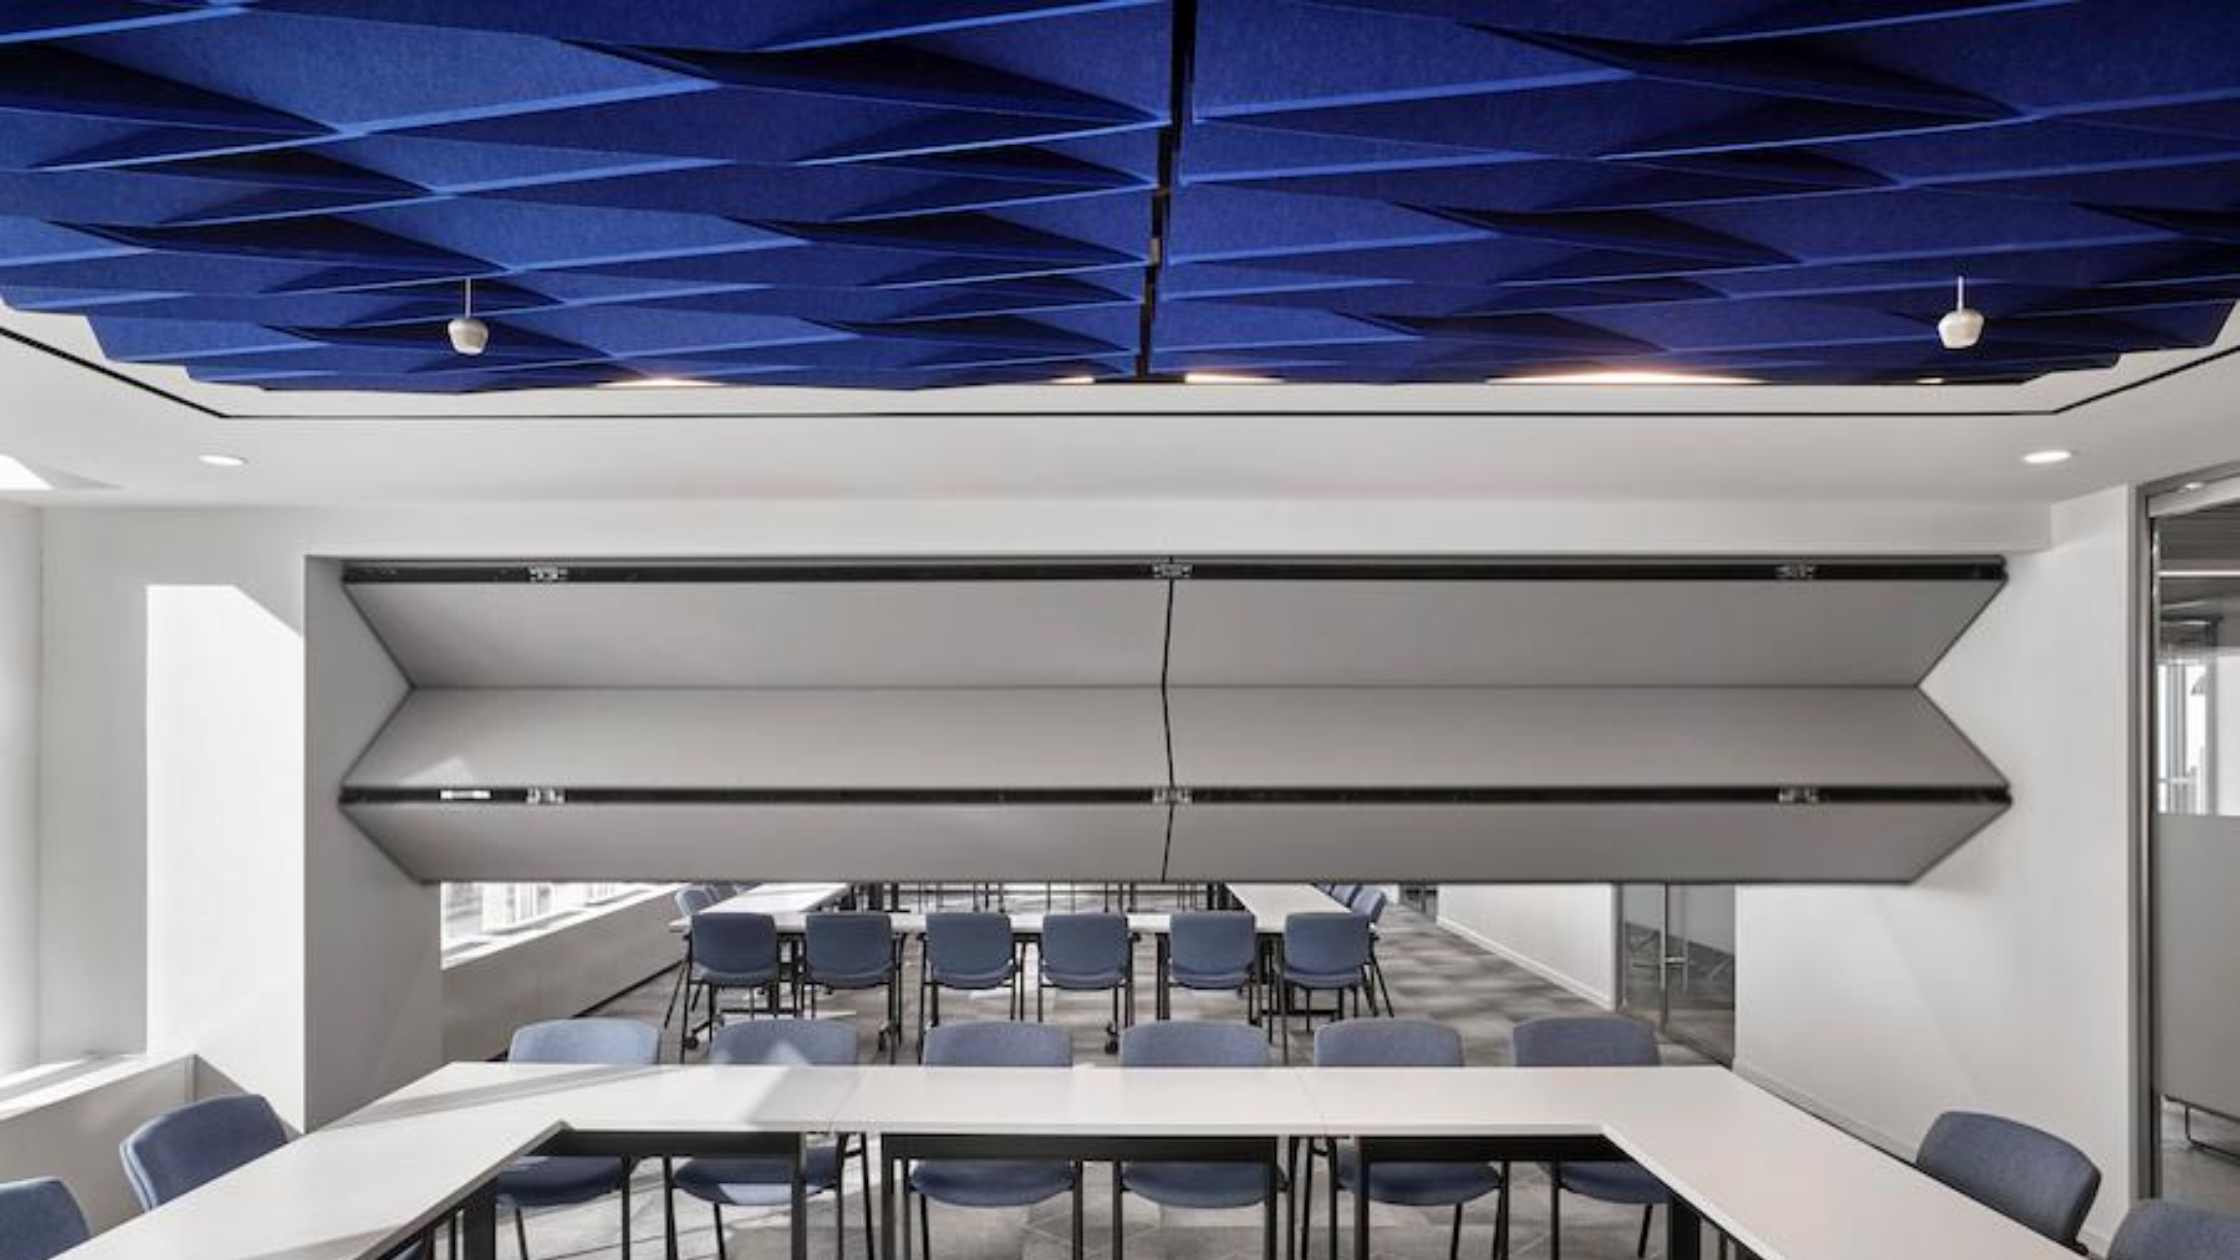 White Skyfold Classic operable partition folding from the ceiling to subdivide an office conference room that has blue acoustic ceiling baffles.